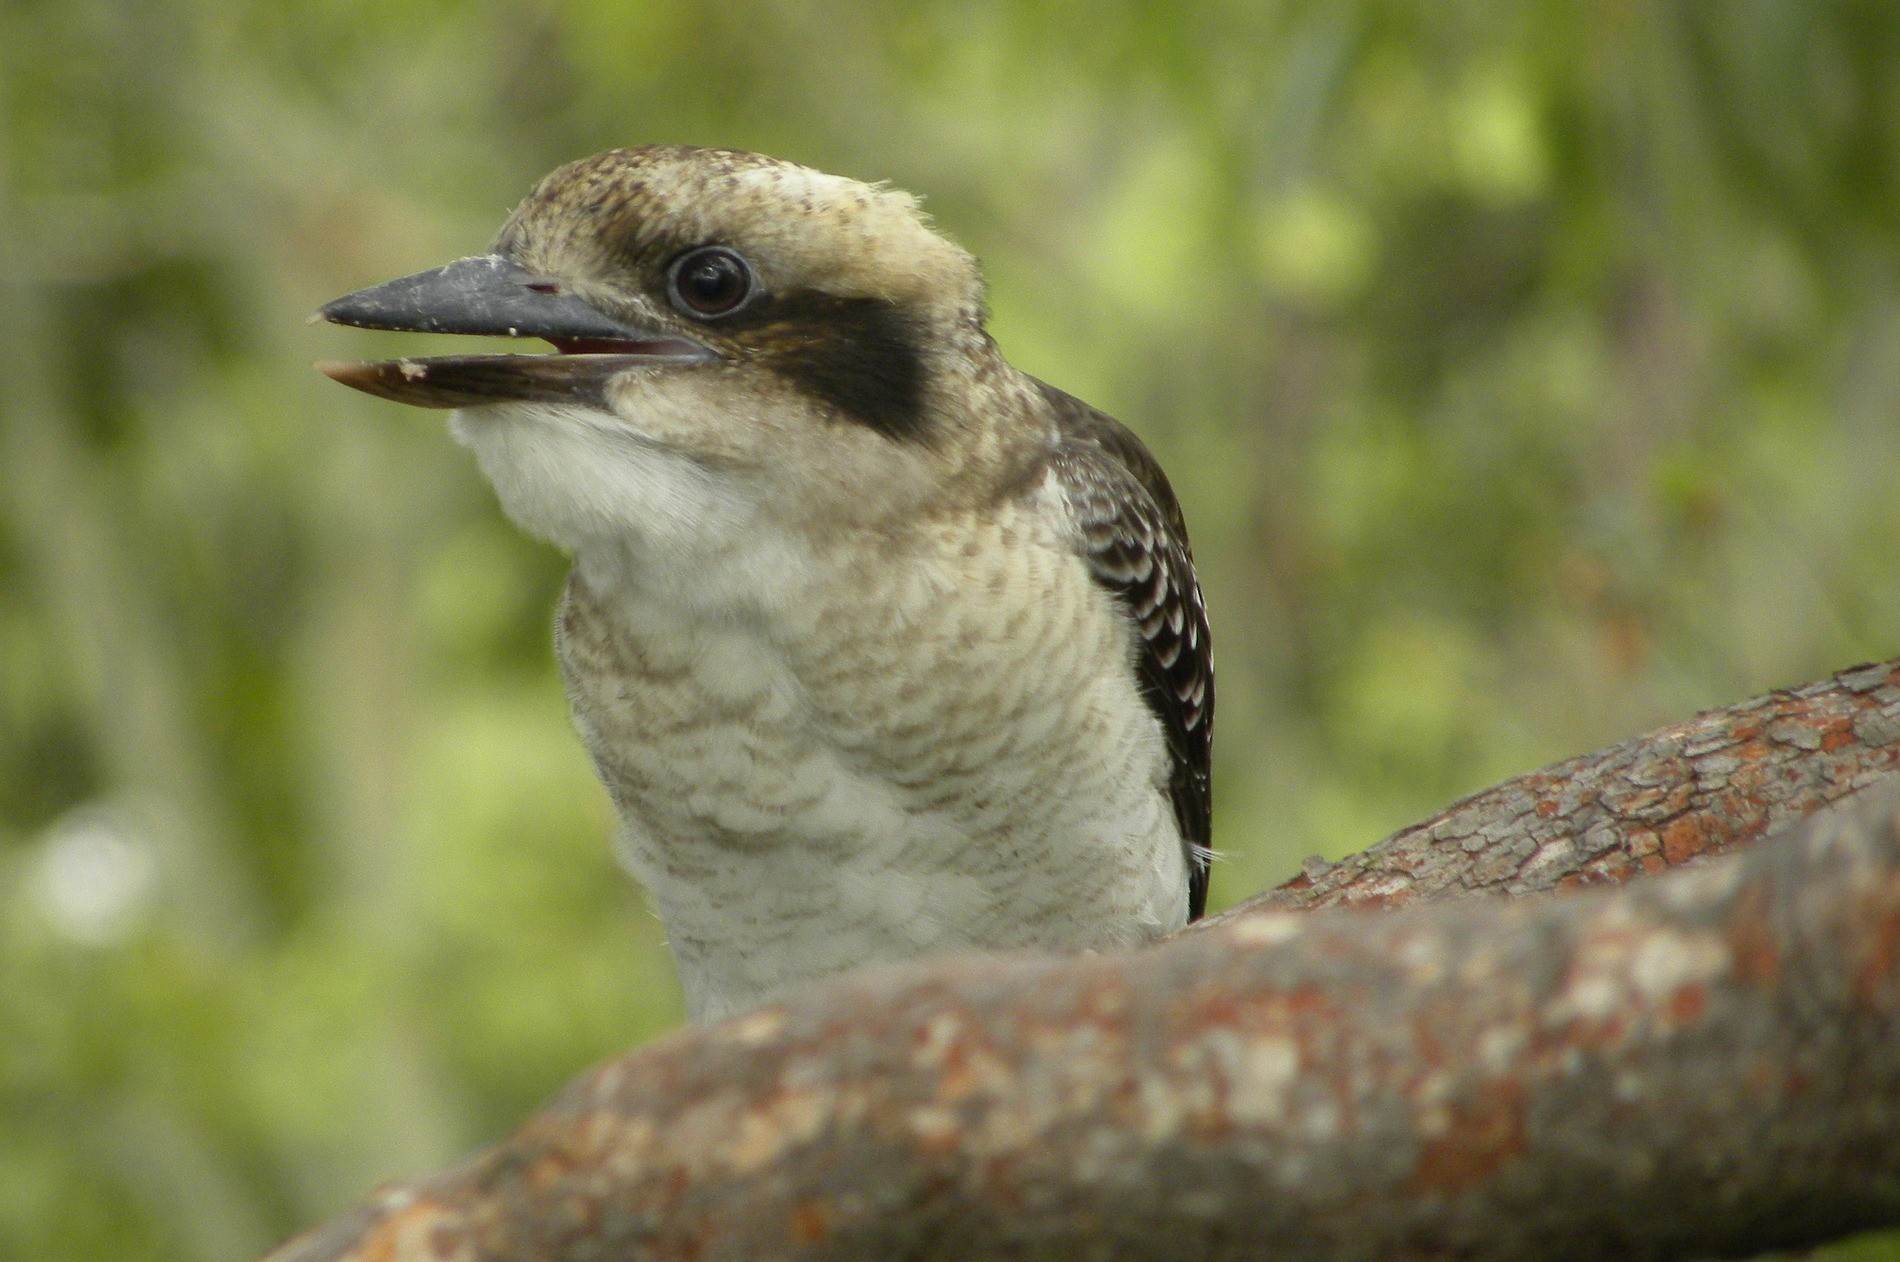 laughing-kookaburra-815022_1920